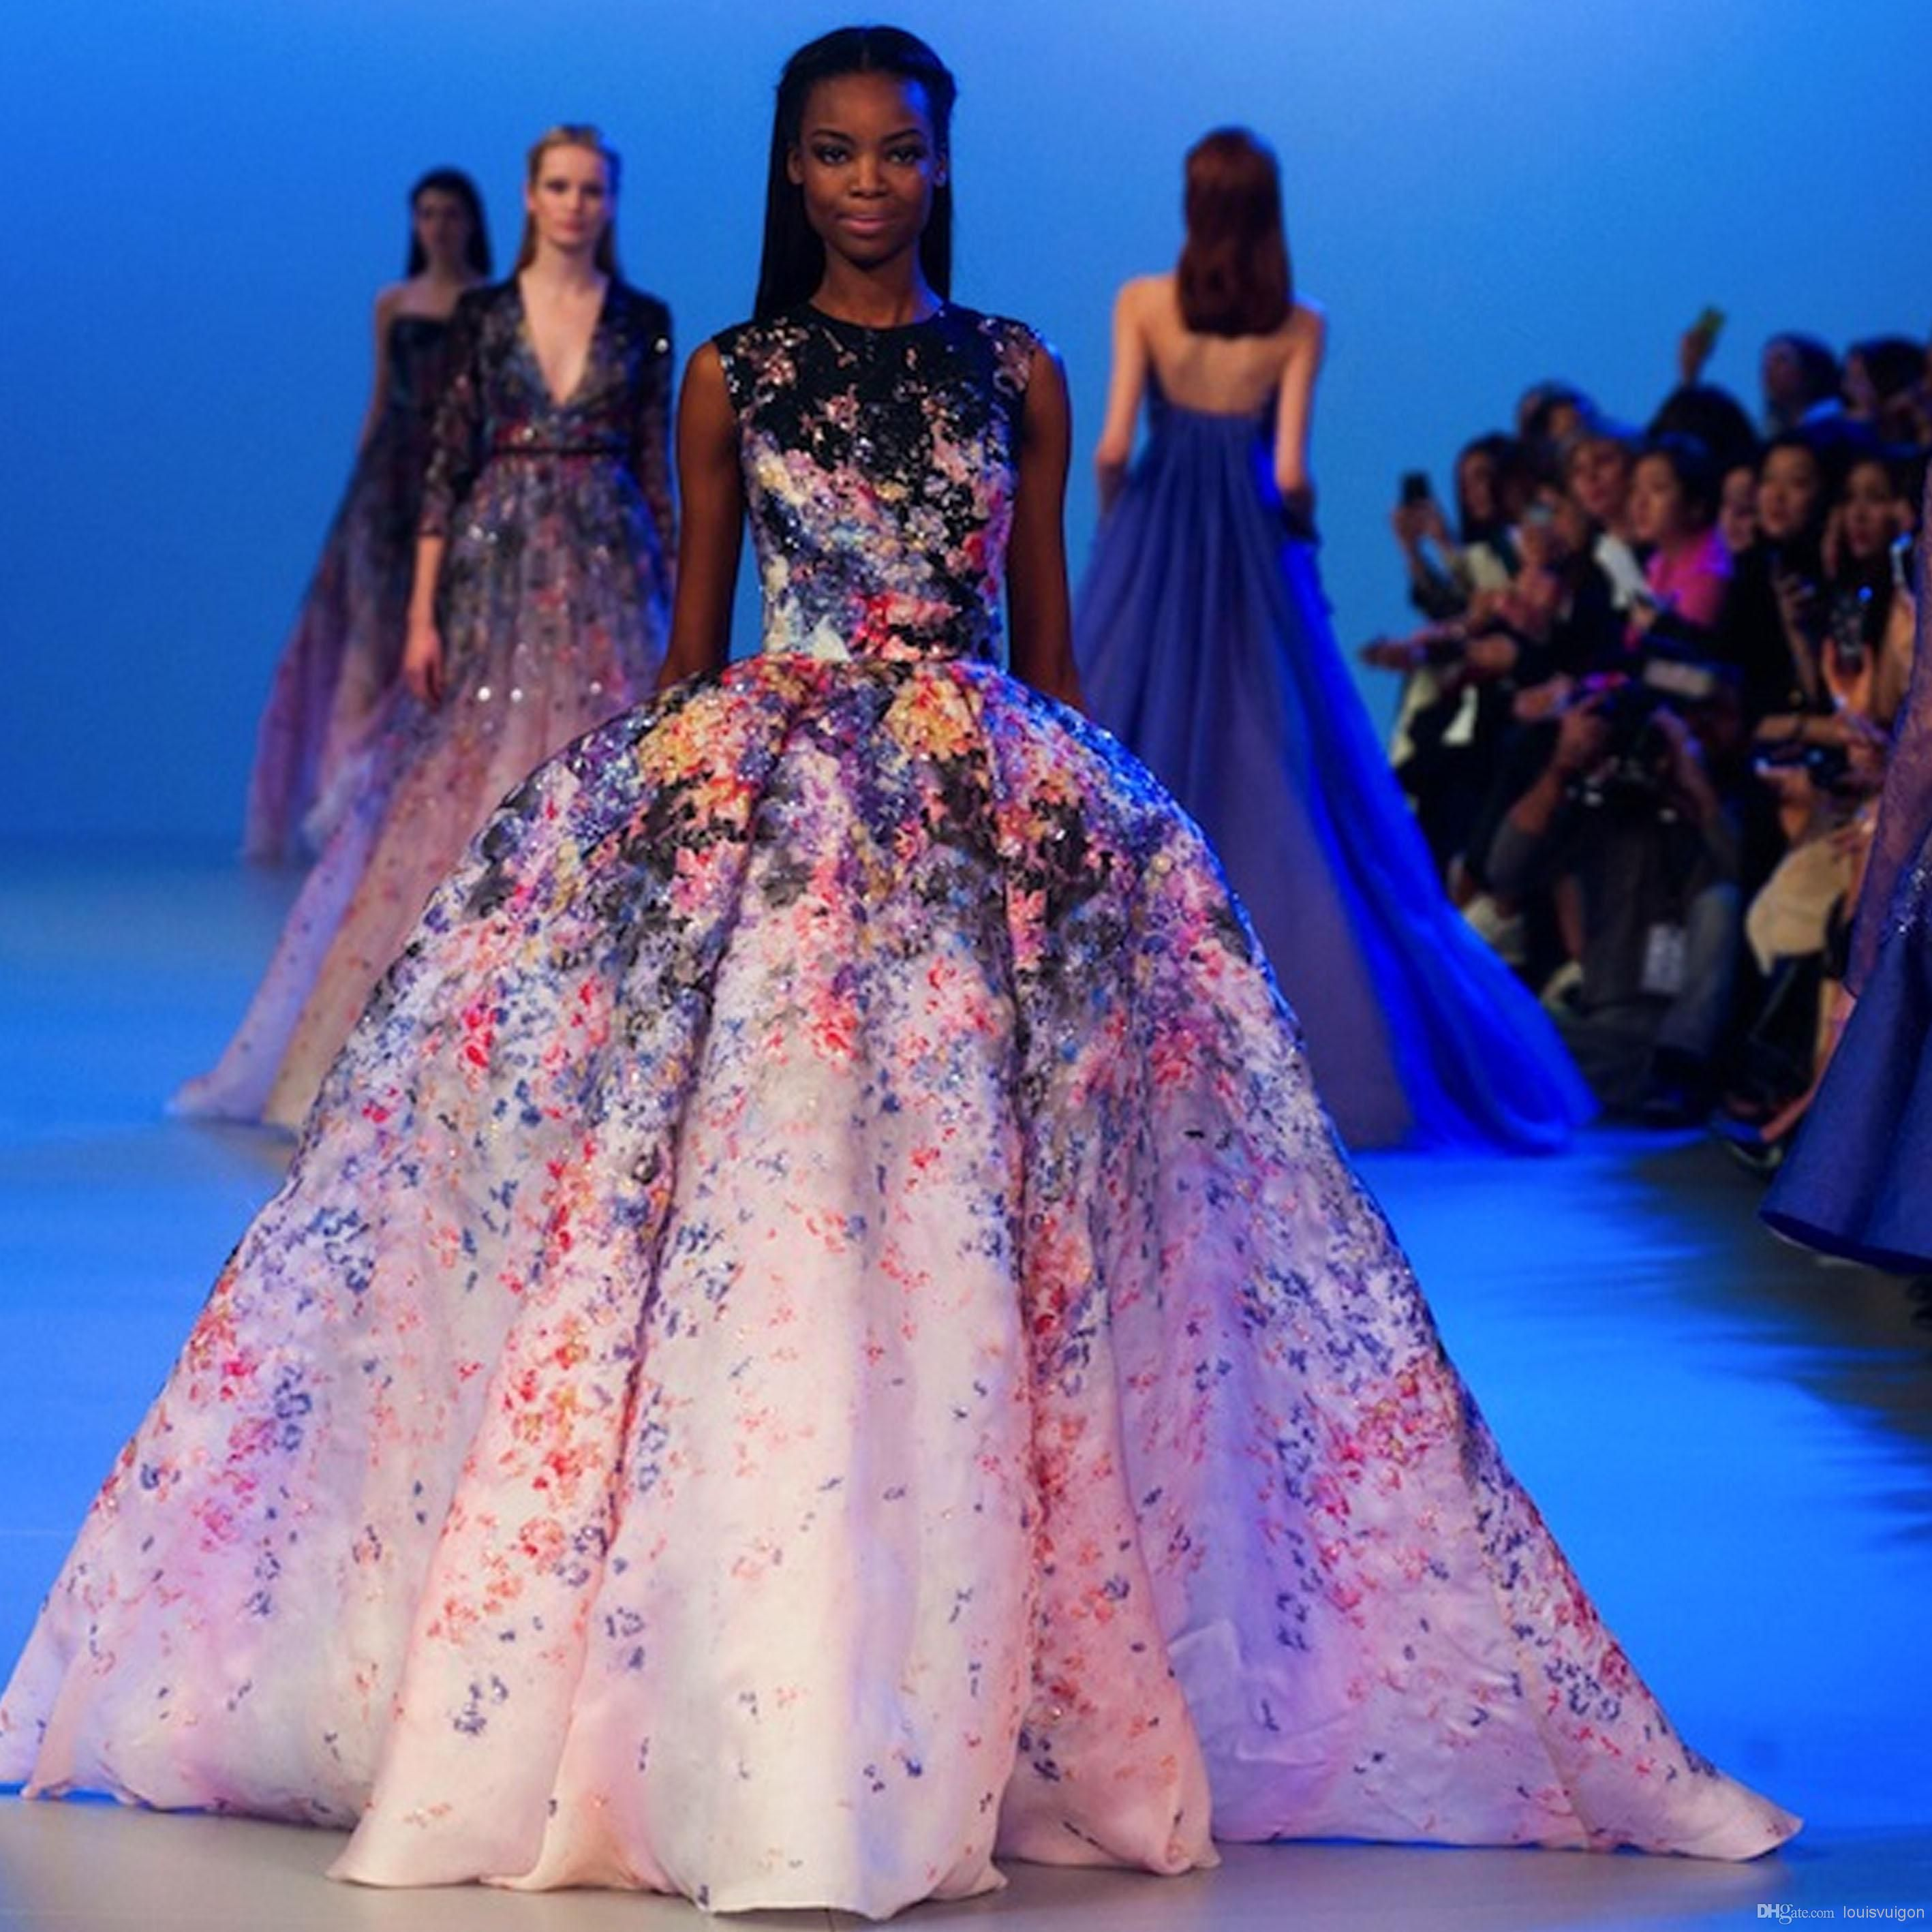 Whole Pageant Dresses For S Celebrity Dress Elie Saab Evening O Neck Ball Gown Print Flower Off The Shoulder Floor Length Custome